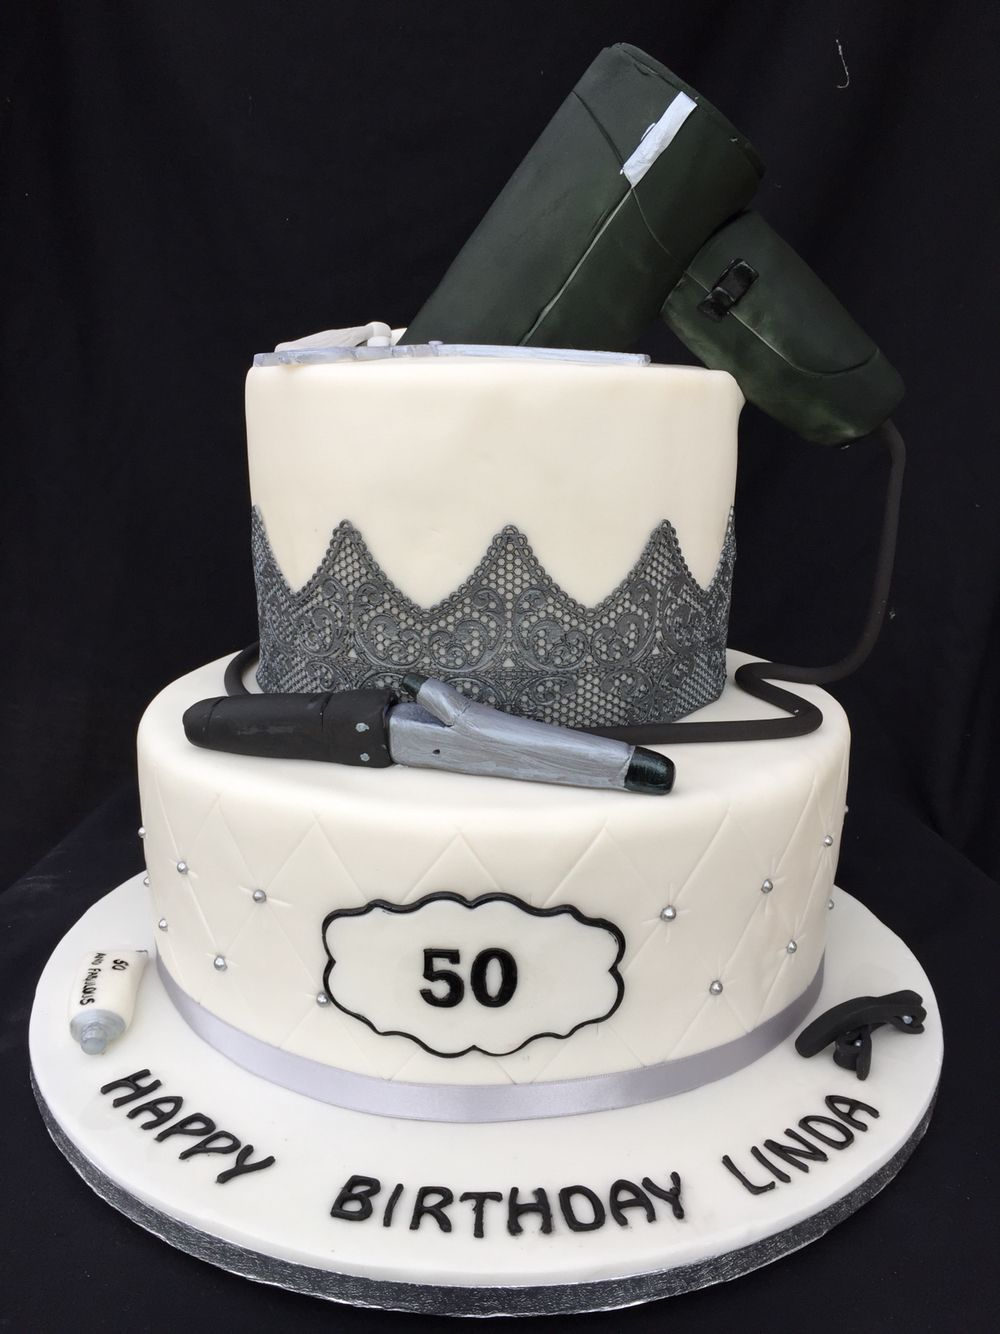 3 Tier 50th Birthday Cake With A Hairdresser Theme